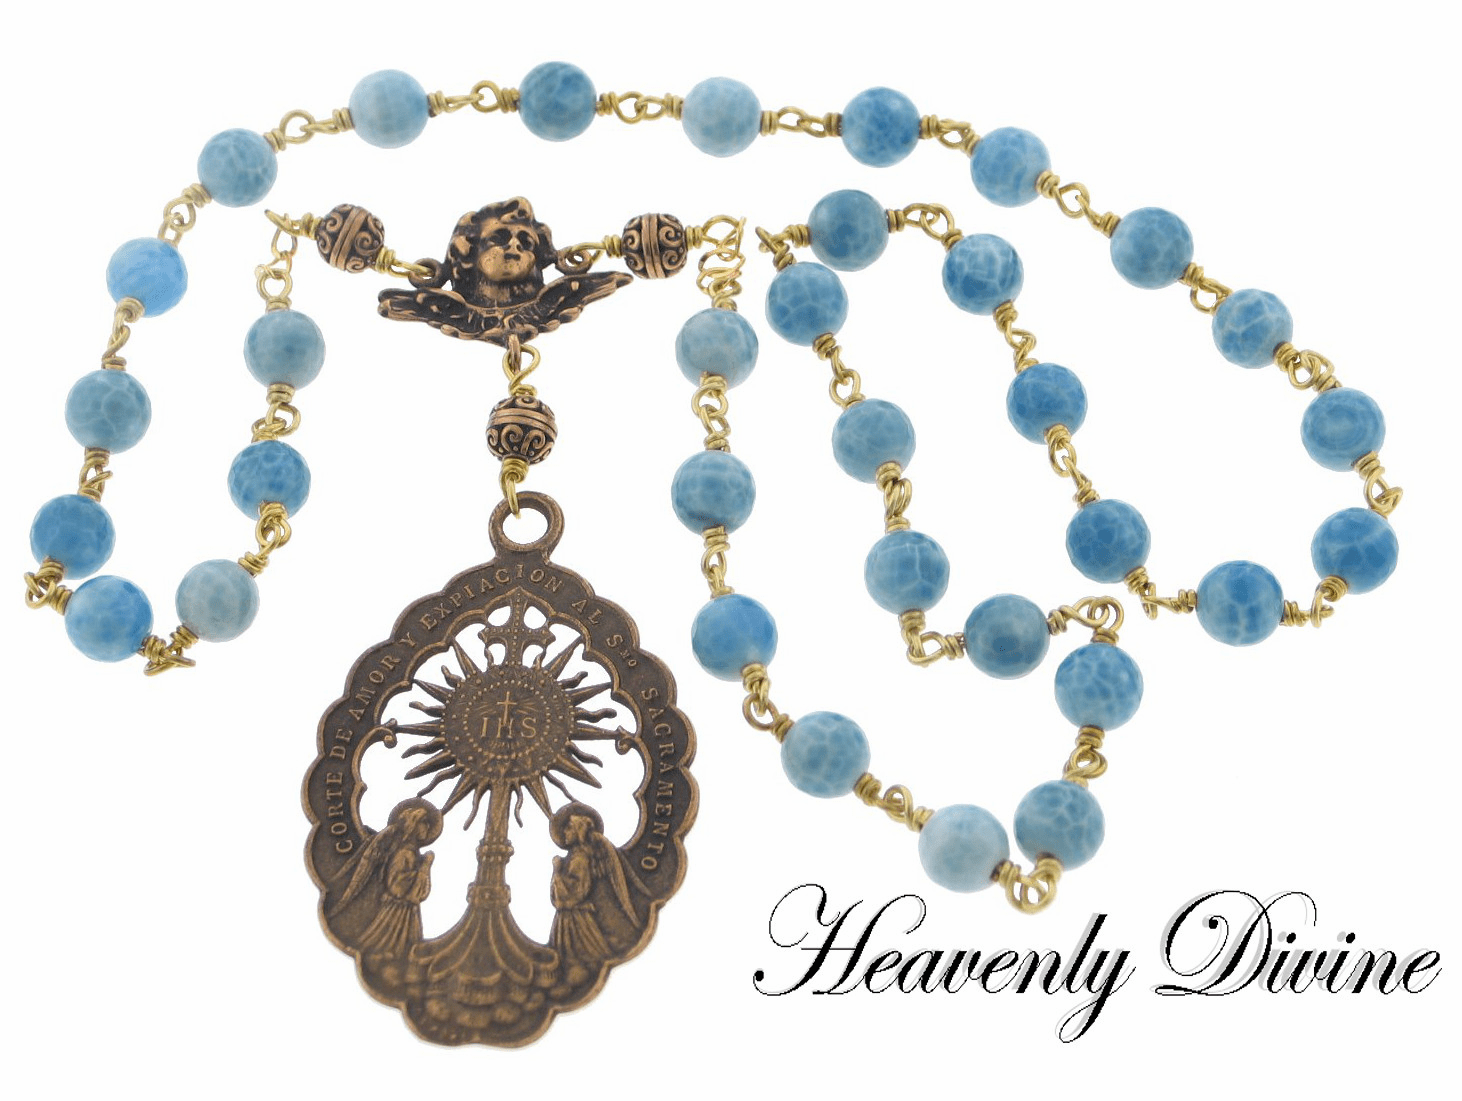 Bronze Handmade Wire Wrapped Beads of the Blessed Sacrament Chaplet by Heavenly Divine